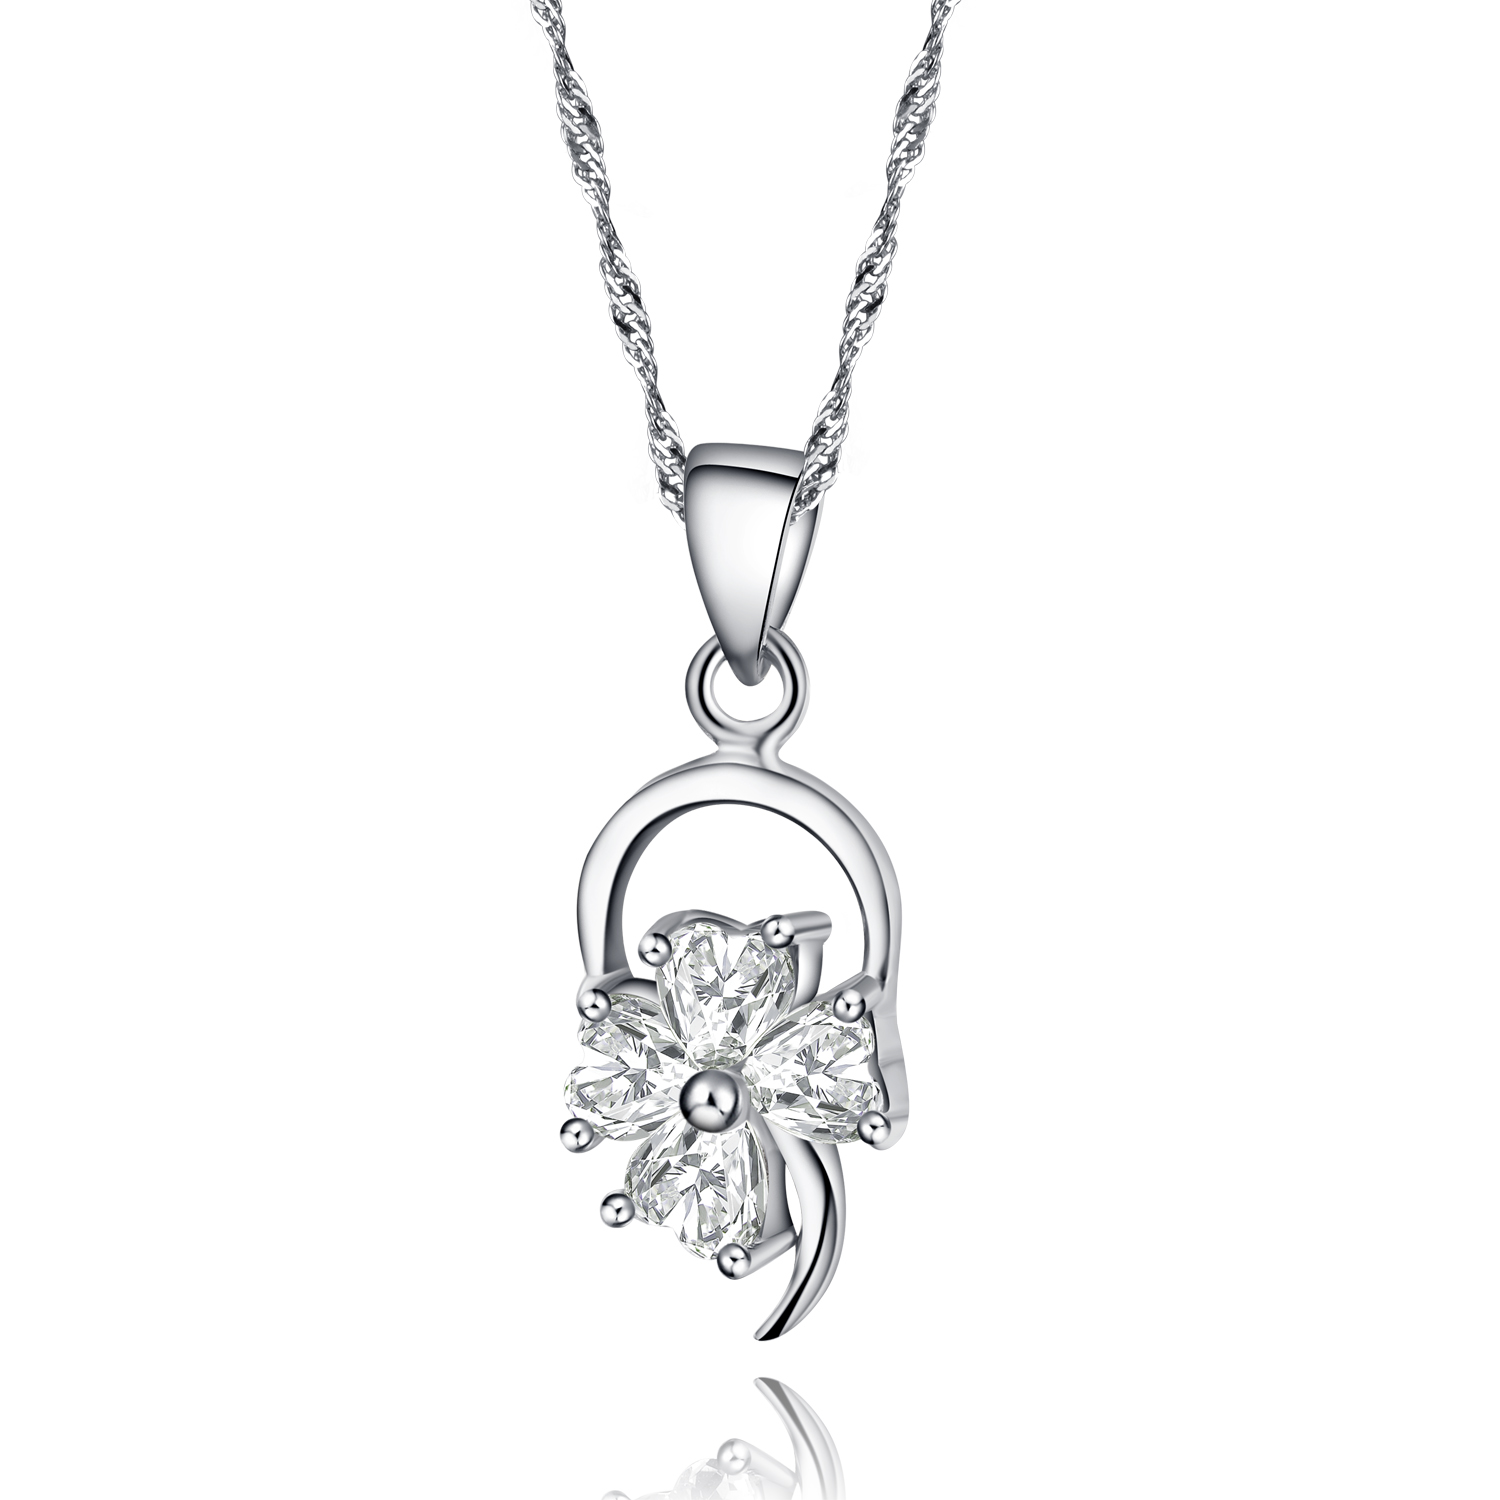 Genuine 925 sterling silver flower pendant necklace paved cubic genuine 925 sterling silver flower pendant necklace paved cubic zirconia cz gem stone and 18 inch aloadofball Choice Image